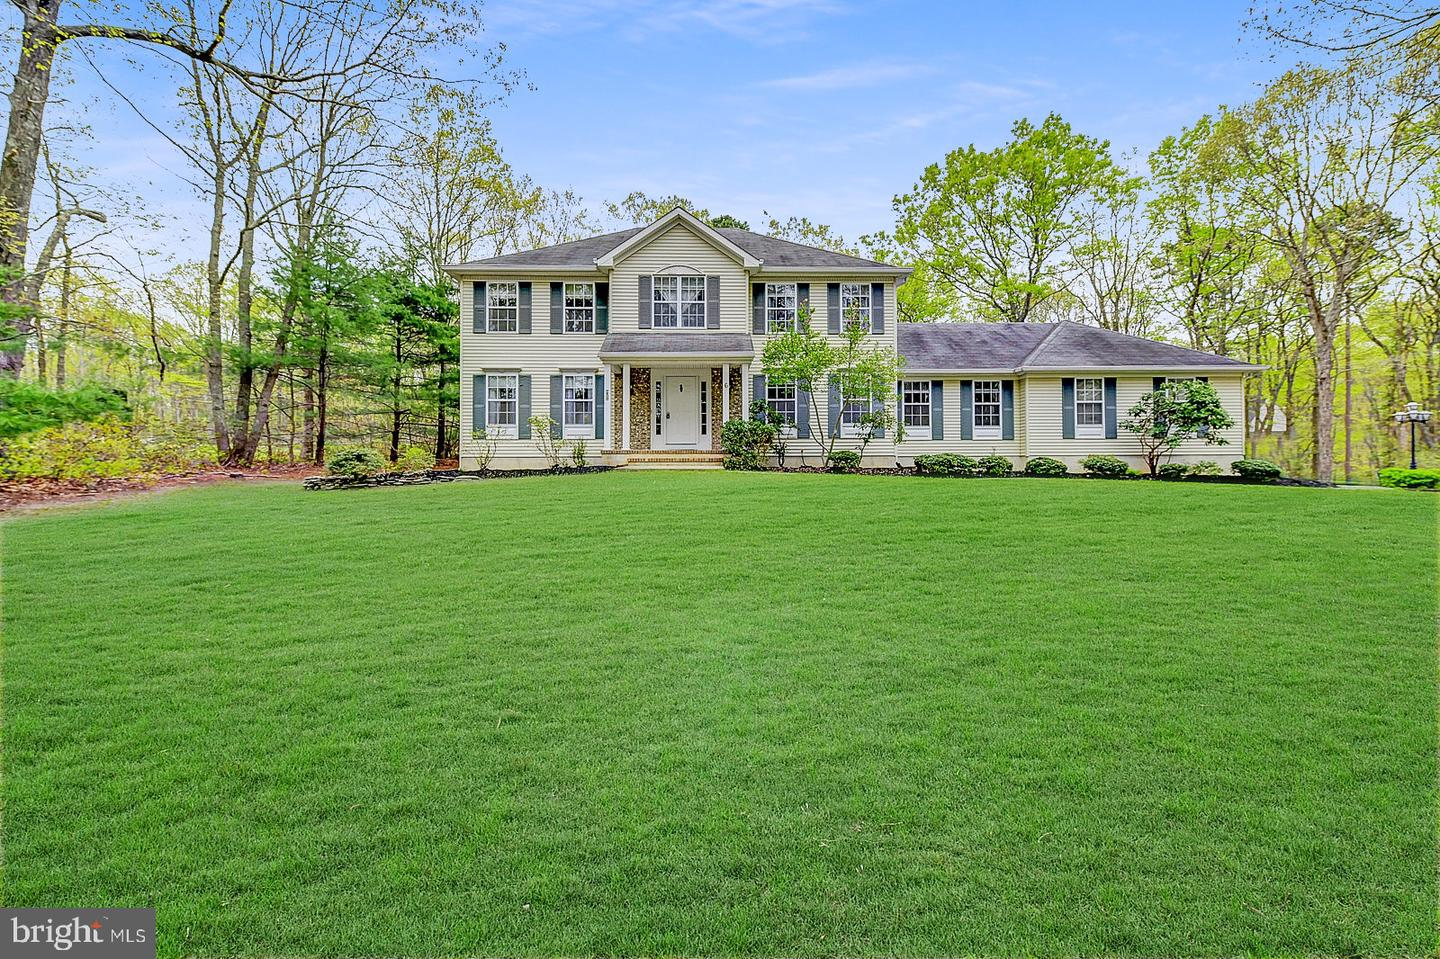 Single Family Home for Sale at New Egypt, New Jersey 08533 United States